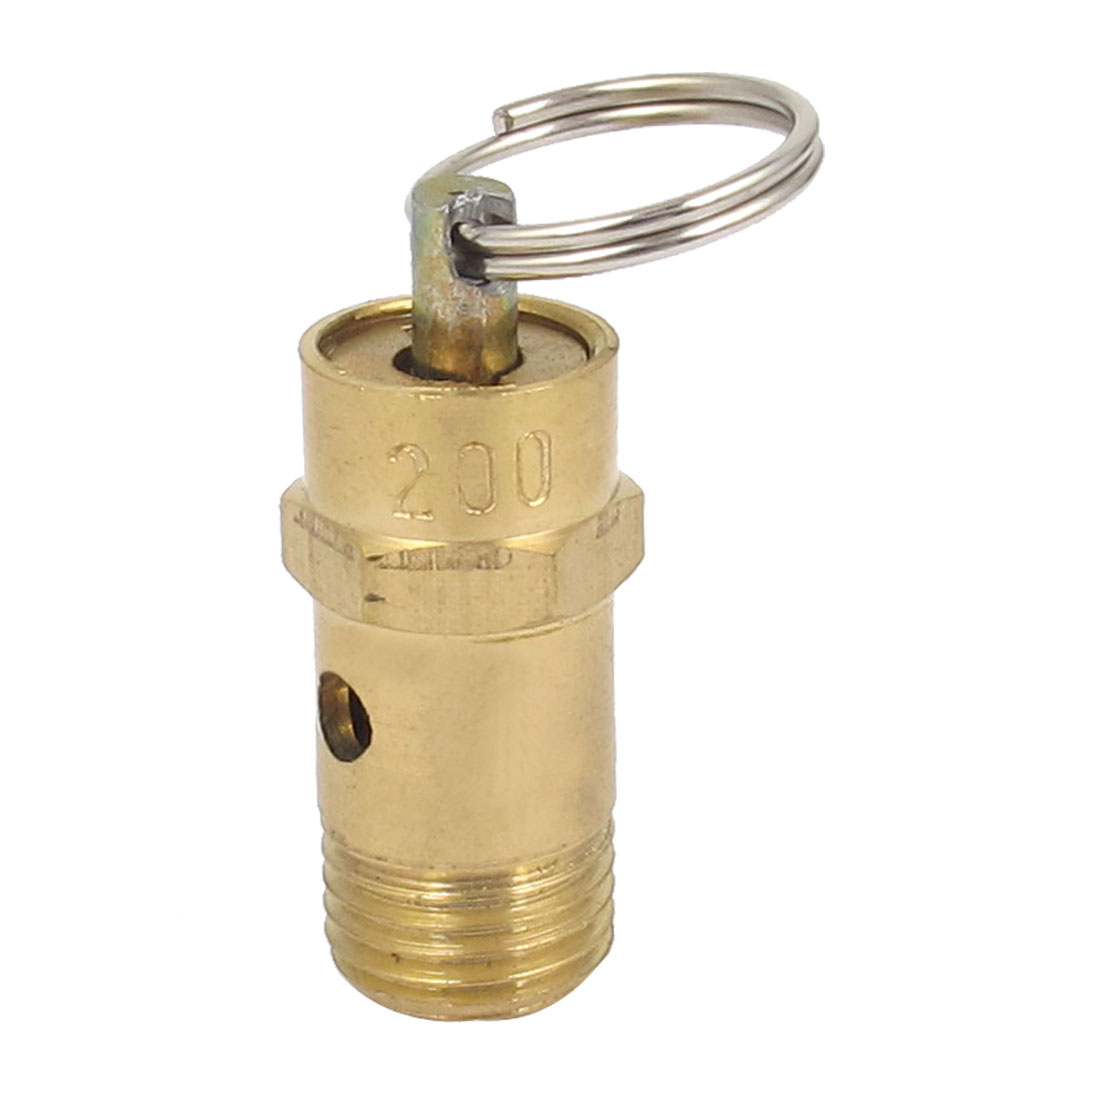 Air Compressor Safety Relief Pressure Valve Brass Tone 13mm Male Thread